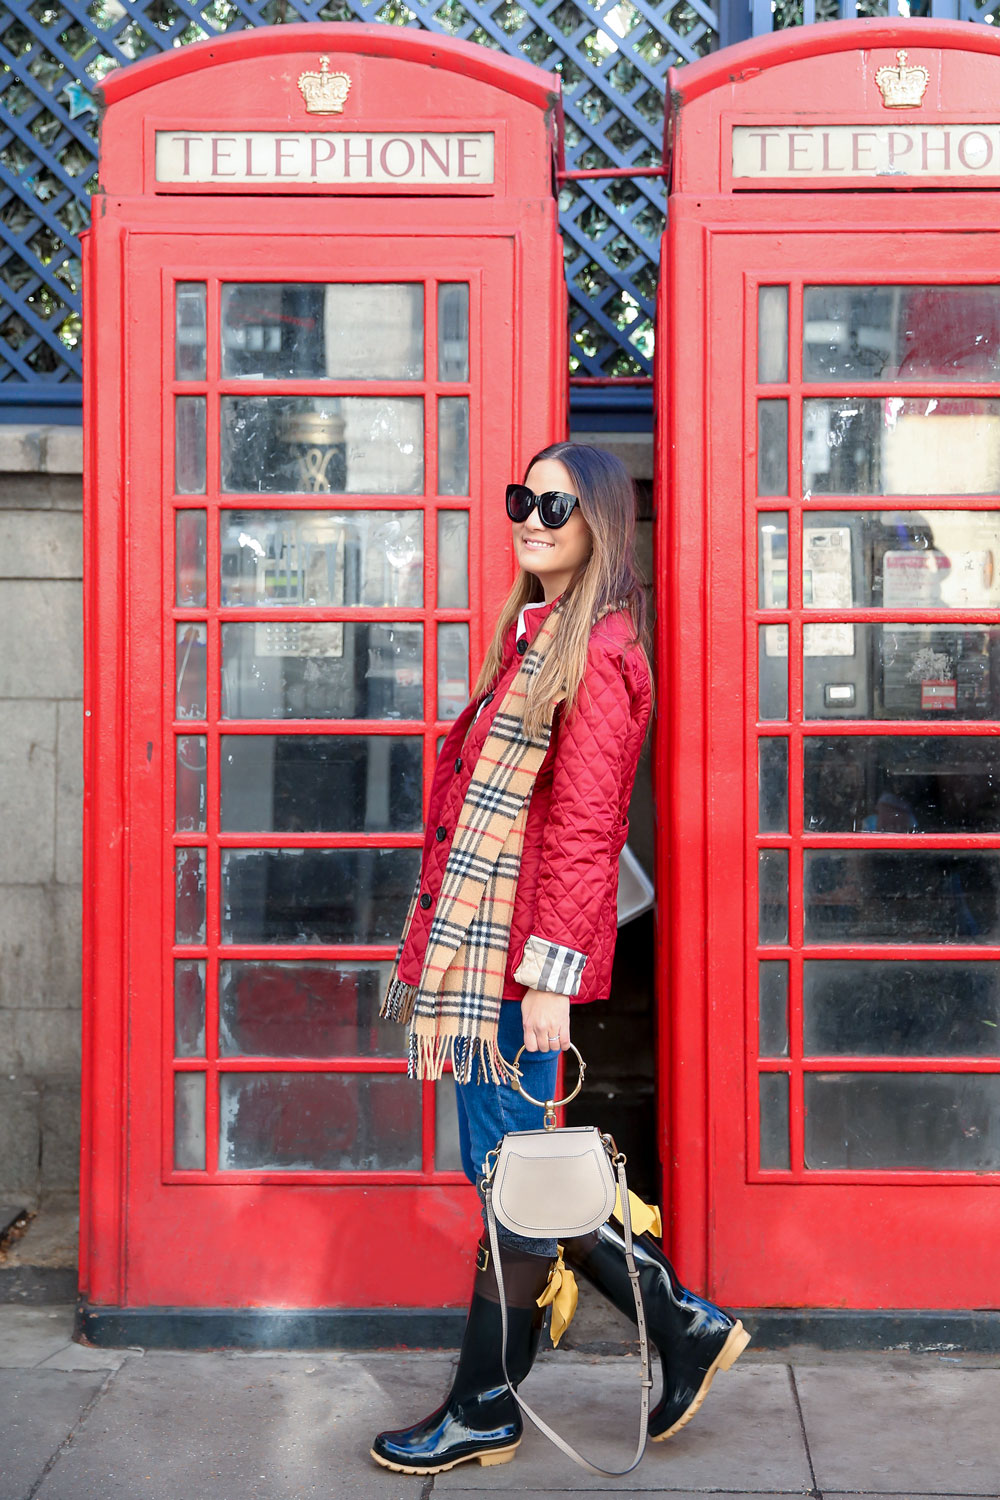 London Red Phone Booth Locations